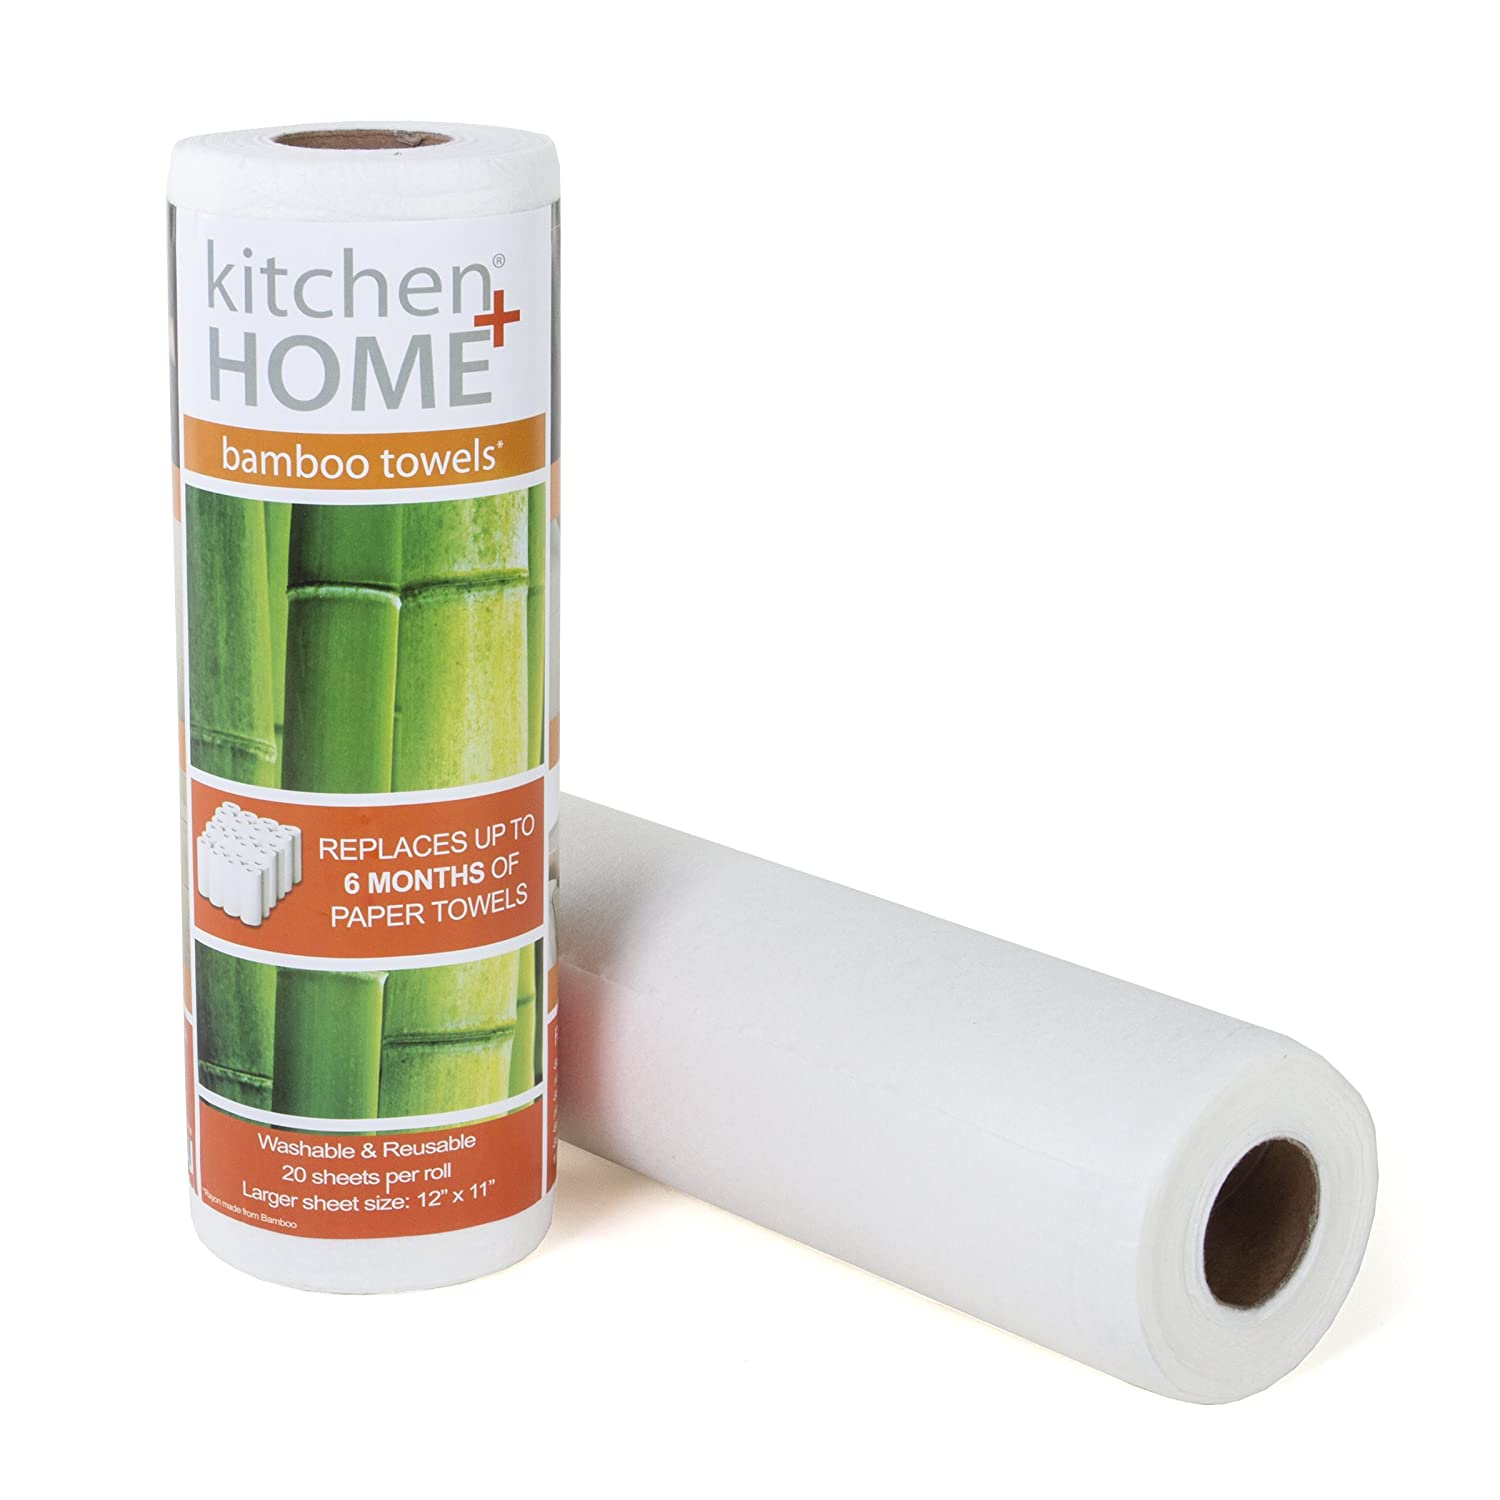 Bamboo Towels - Heavy Duty Eco Friendly Machine Washable Reusable Bamboo Towels - One roll Replaces 6 Months of Towels! (1)